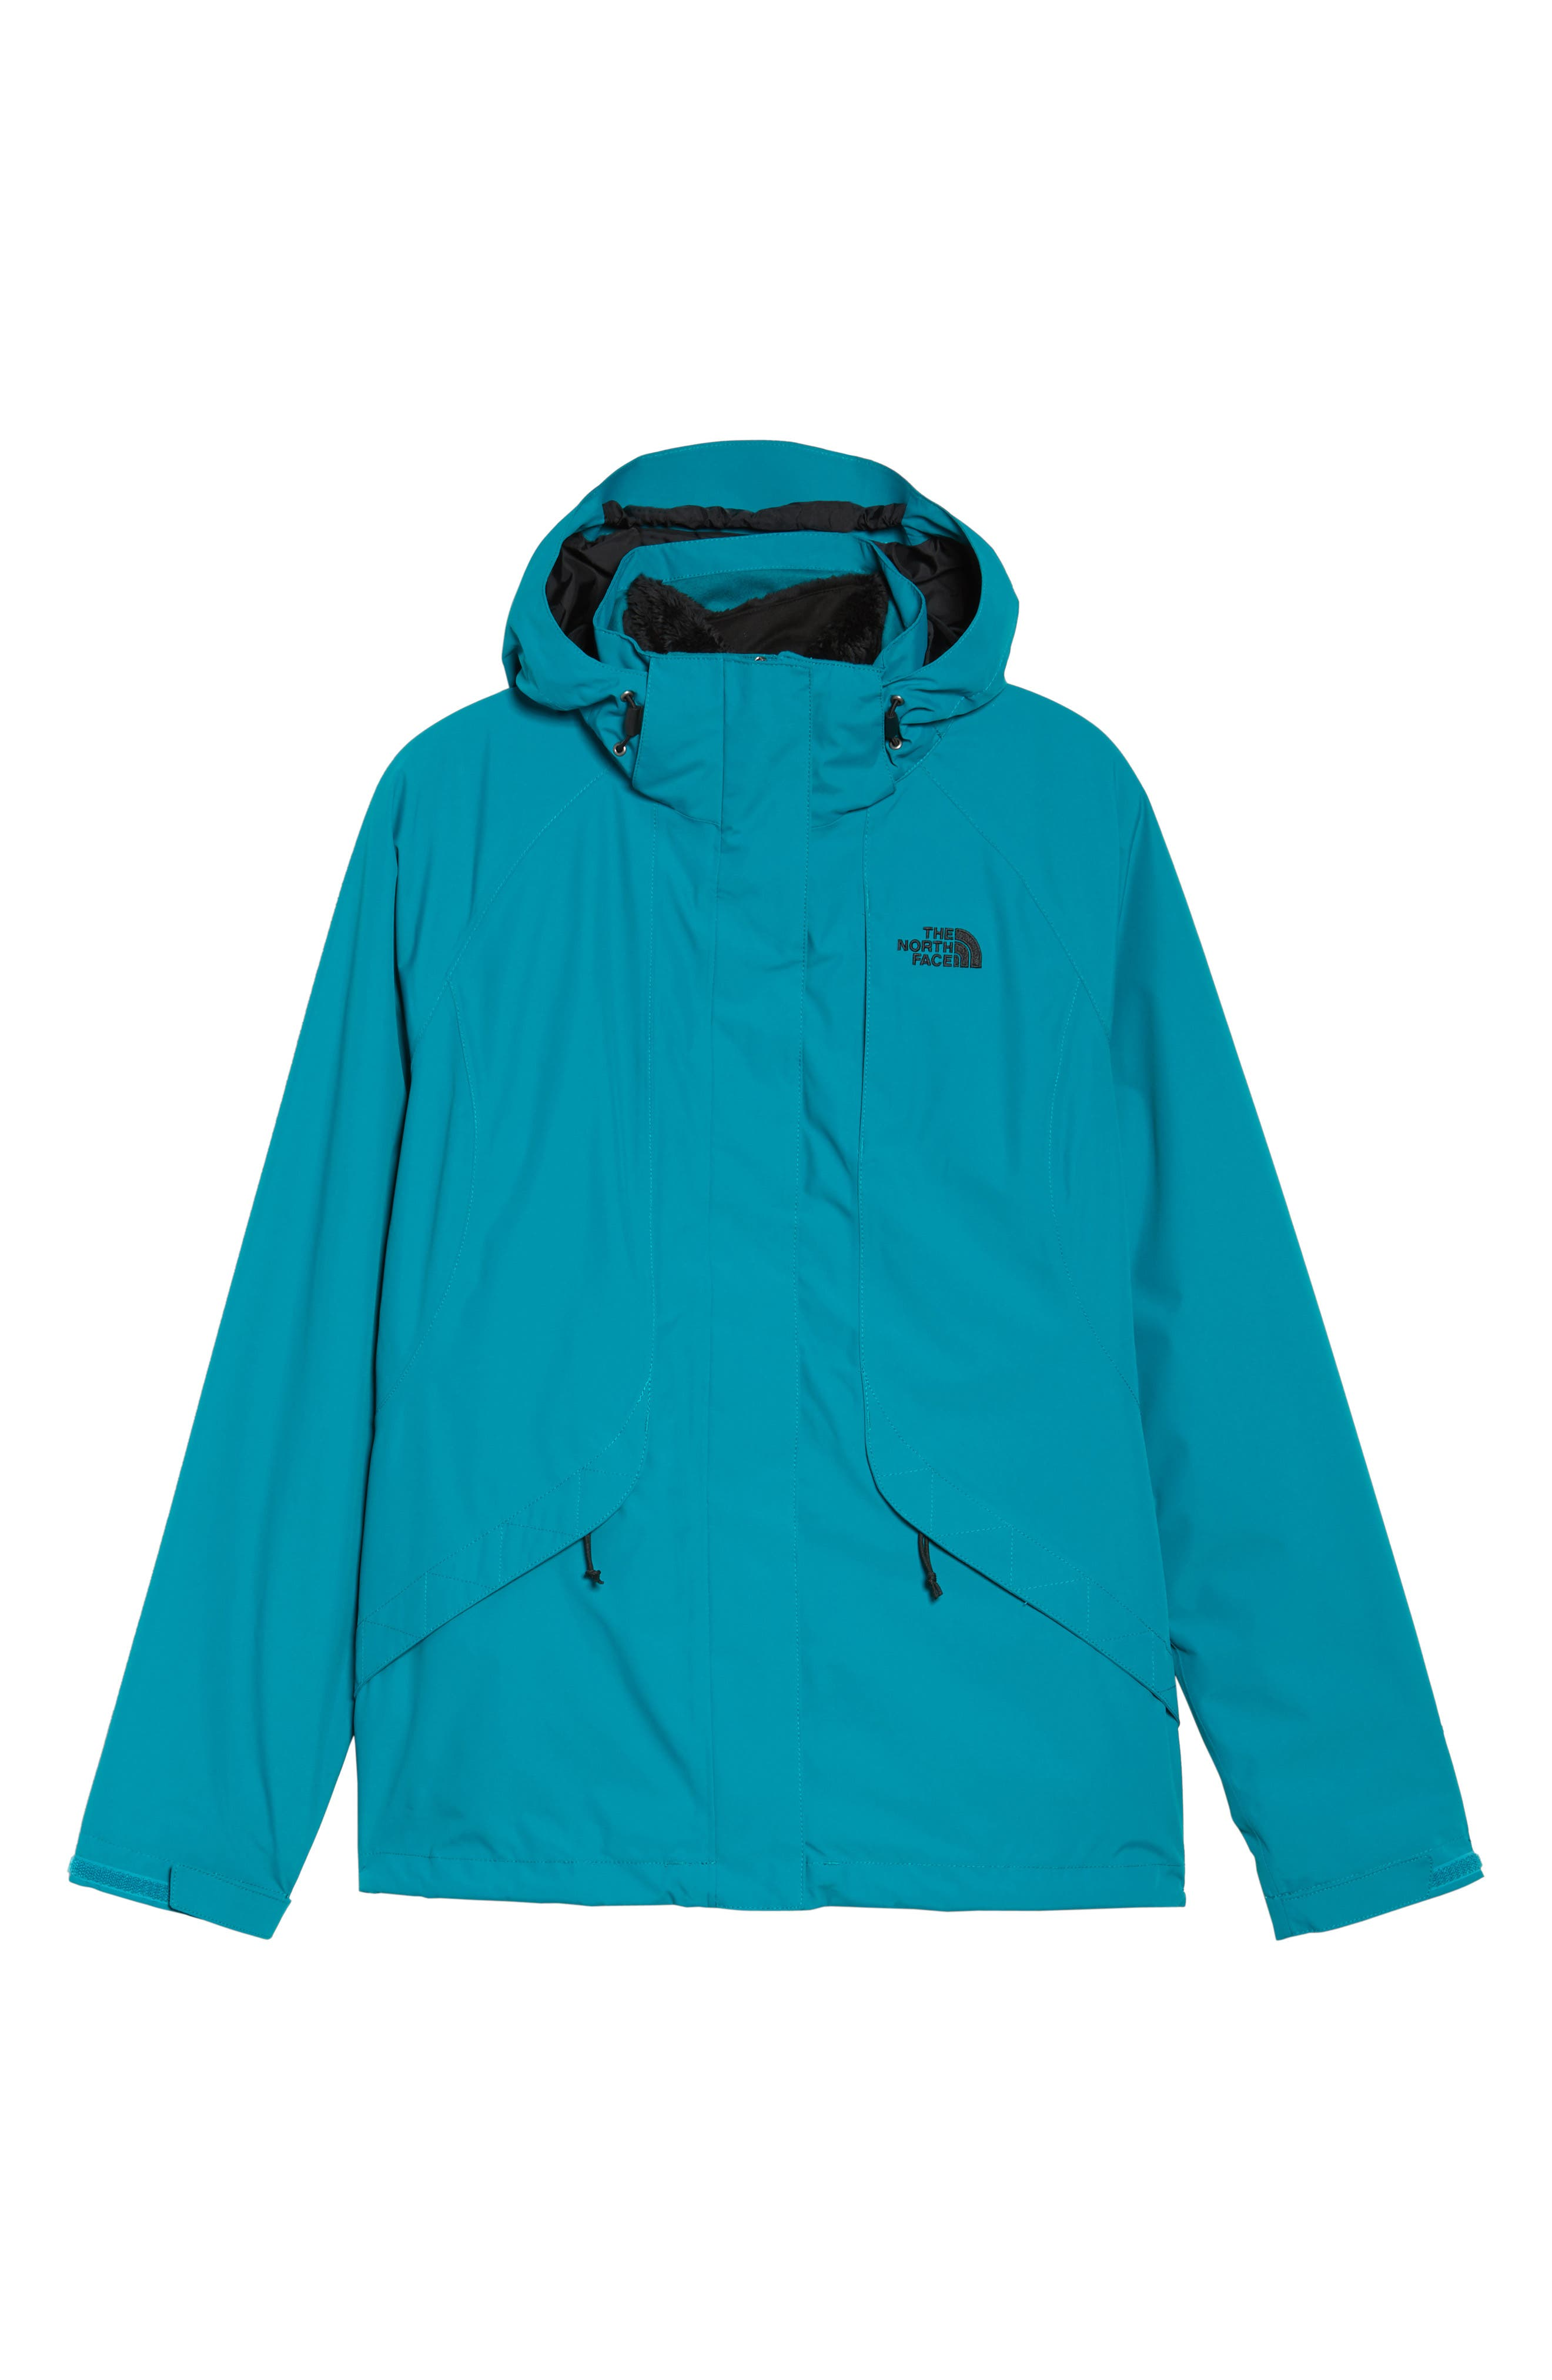 Boundary Triclimate<sup>®</sup> 3-in-1 Jacket,                             Alternate thumbnail 21, color,